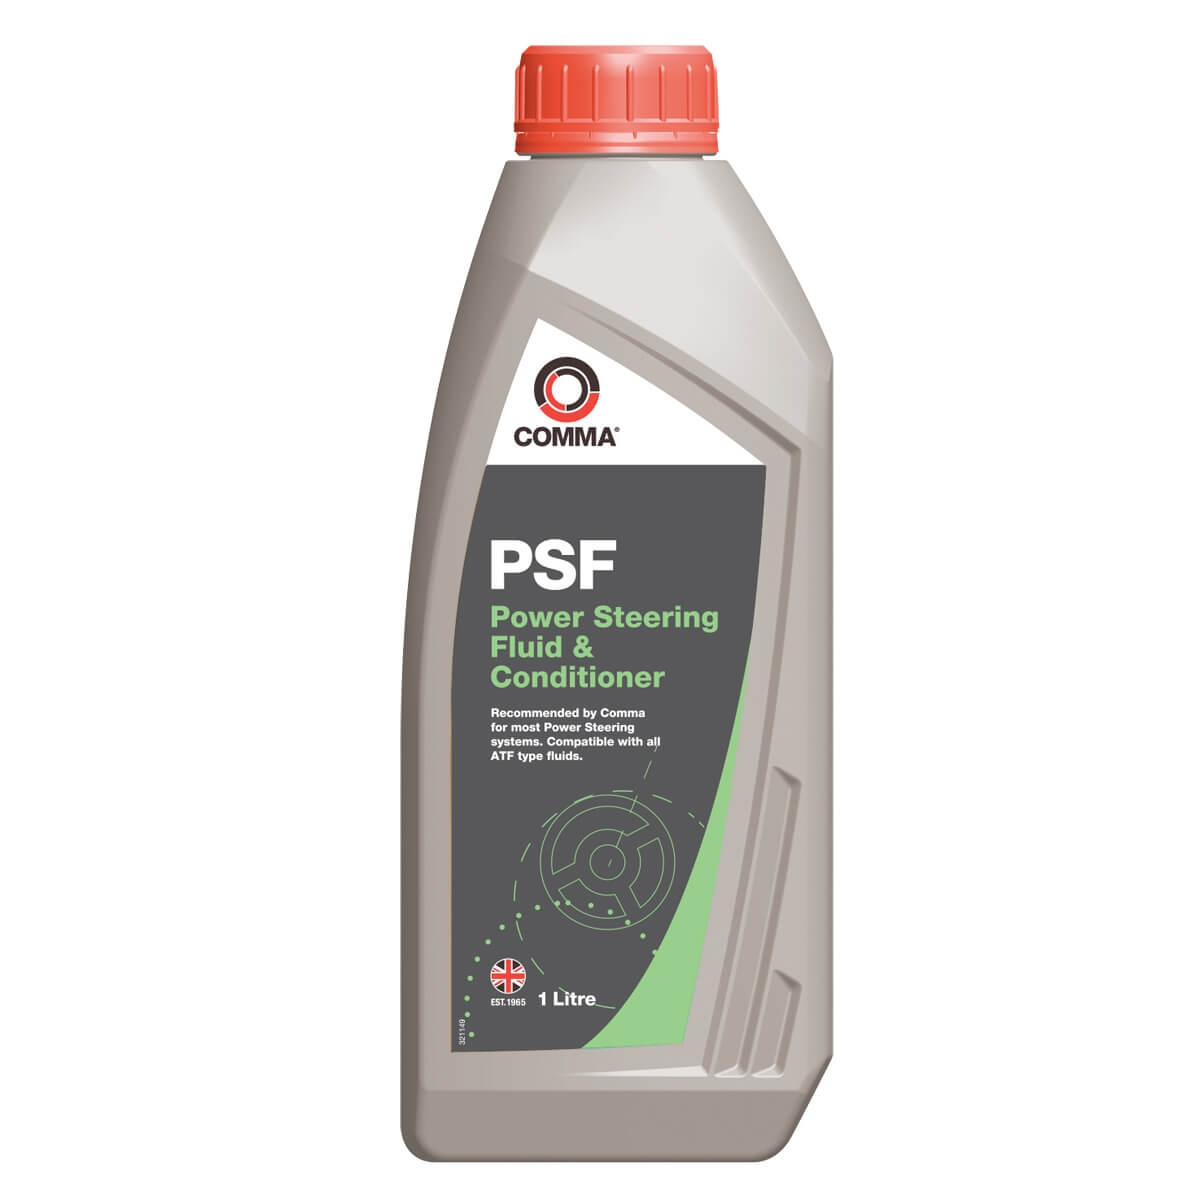 HYUNDAI H-1 Power Steering Oil